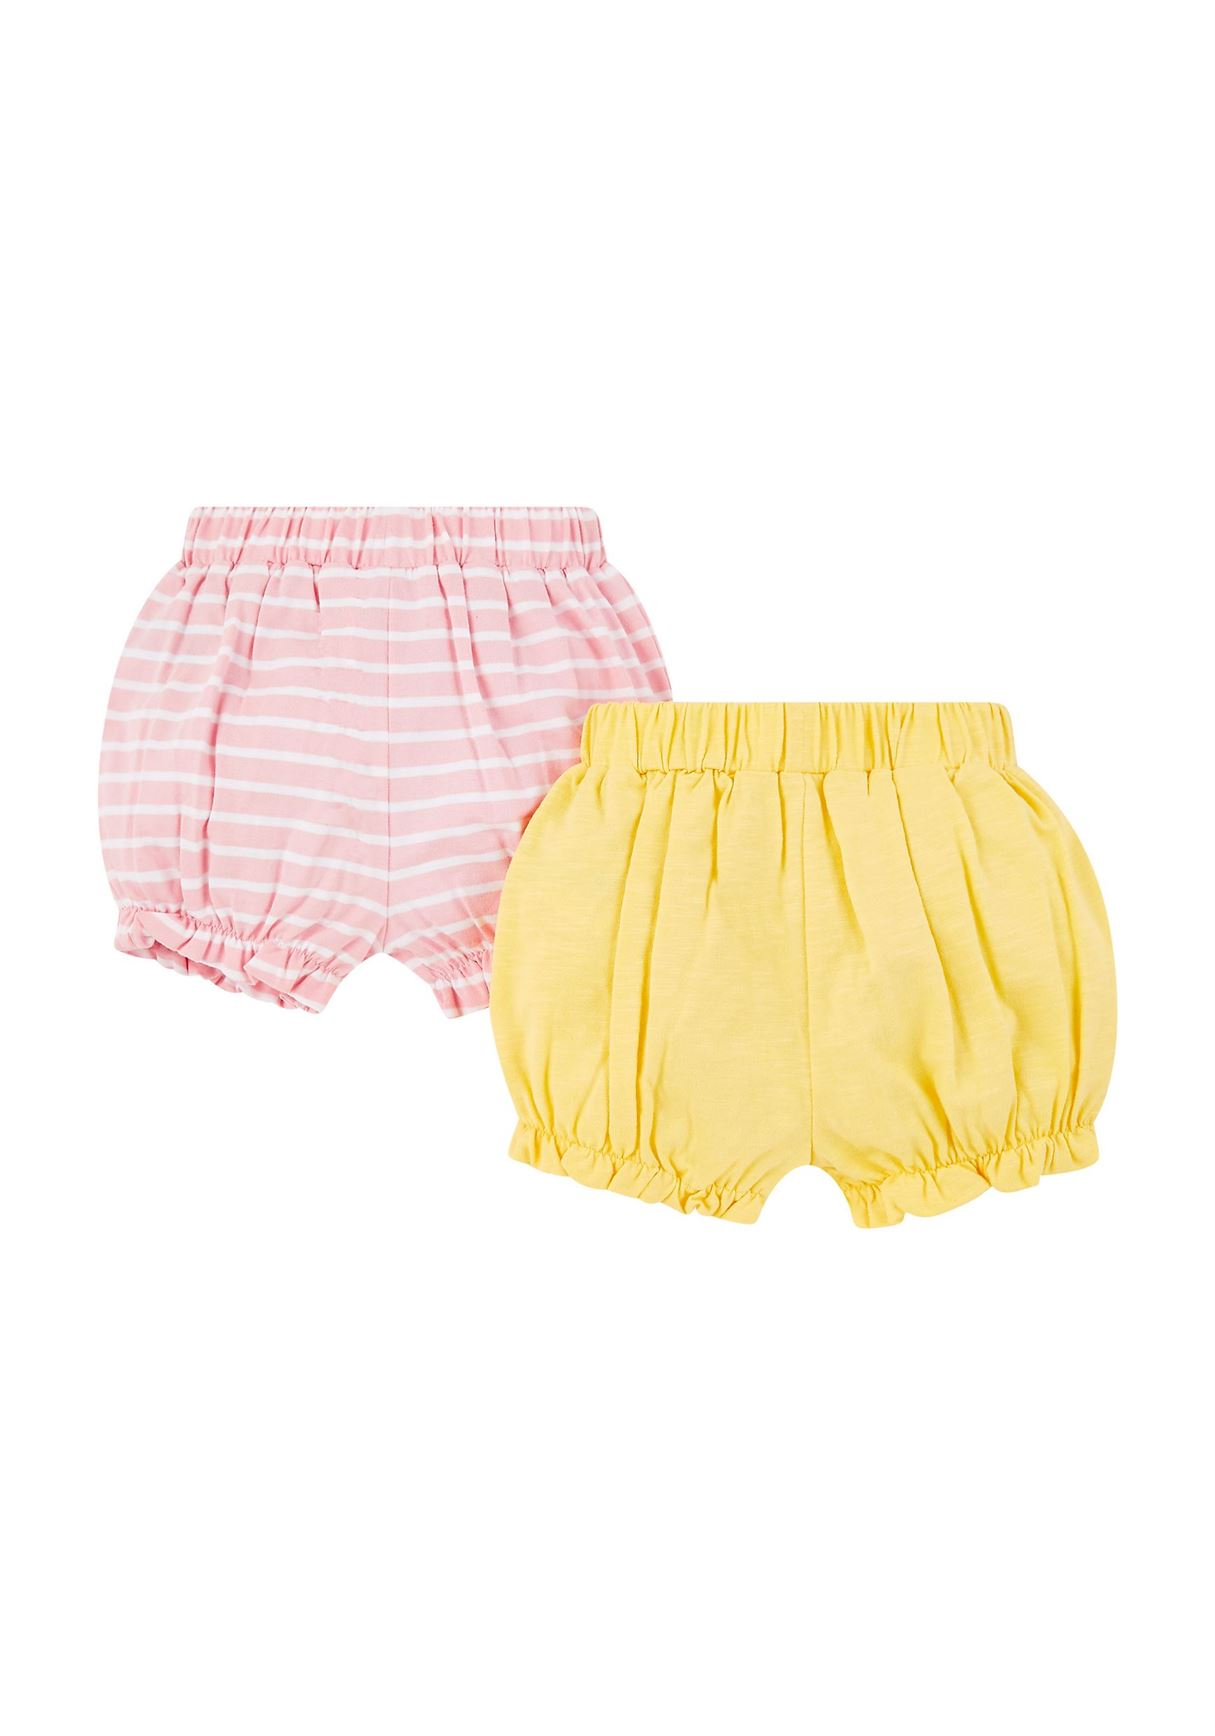 Mothercare Girls Assorted Printed Pack of 2 Shorts